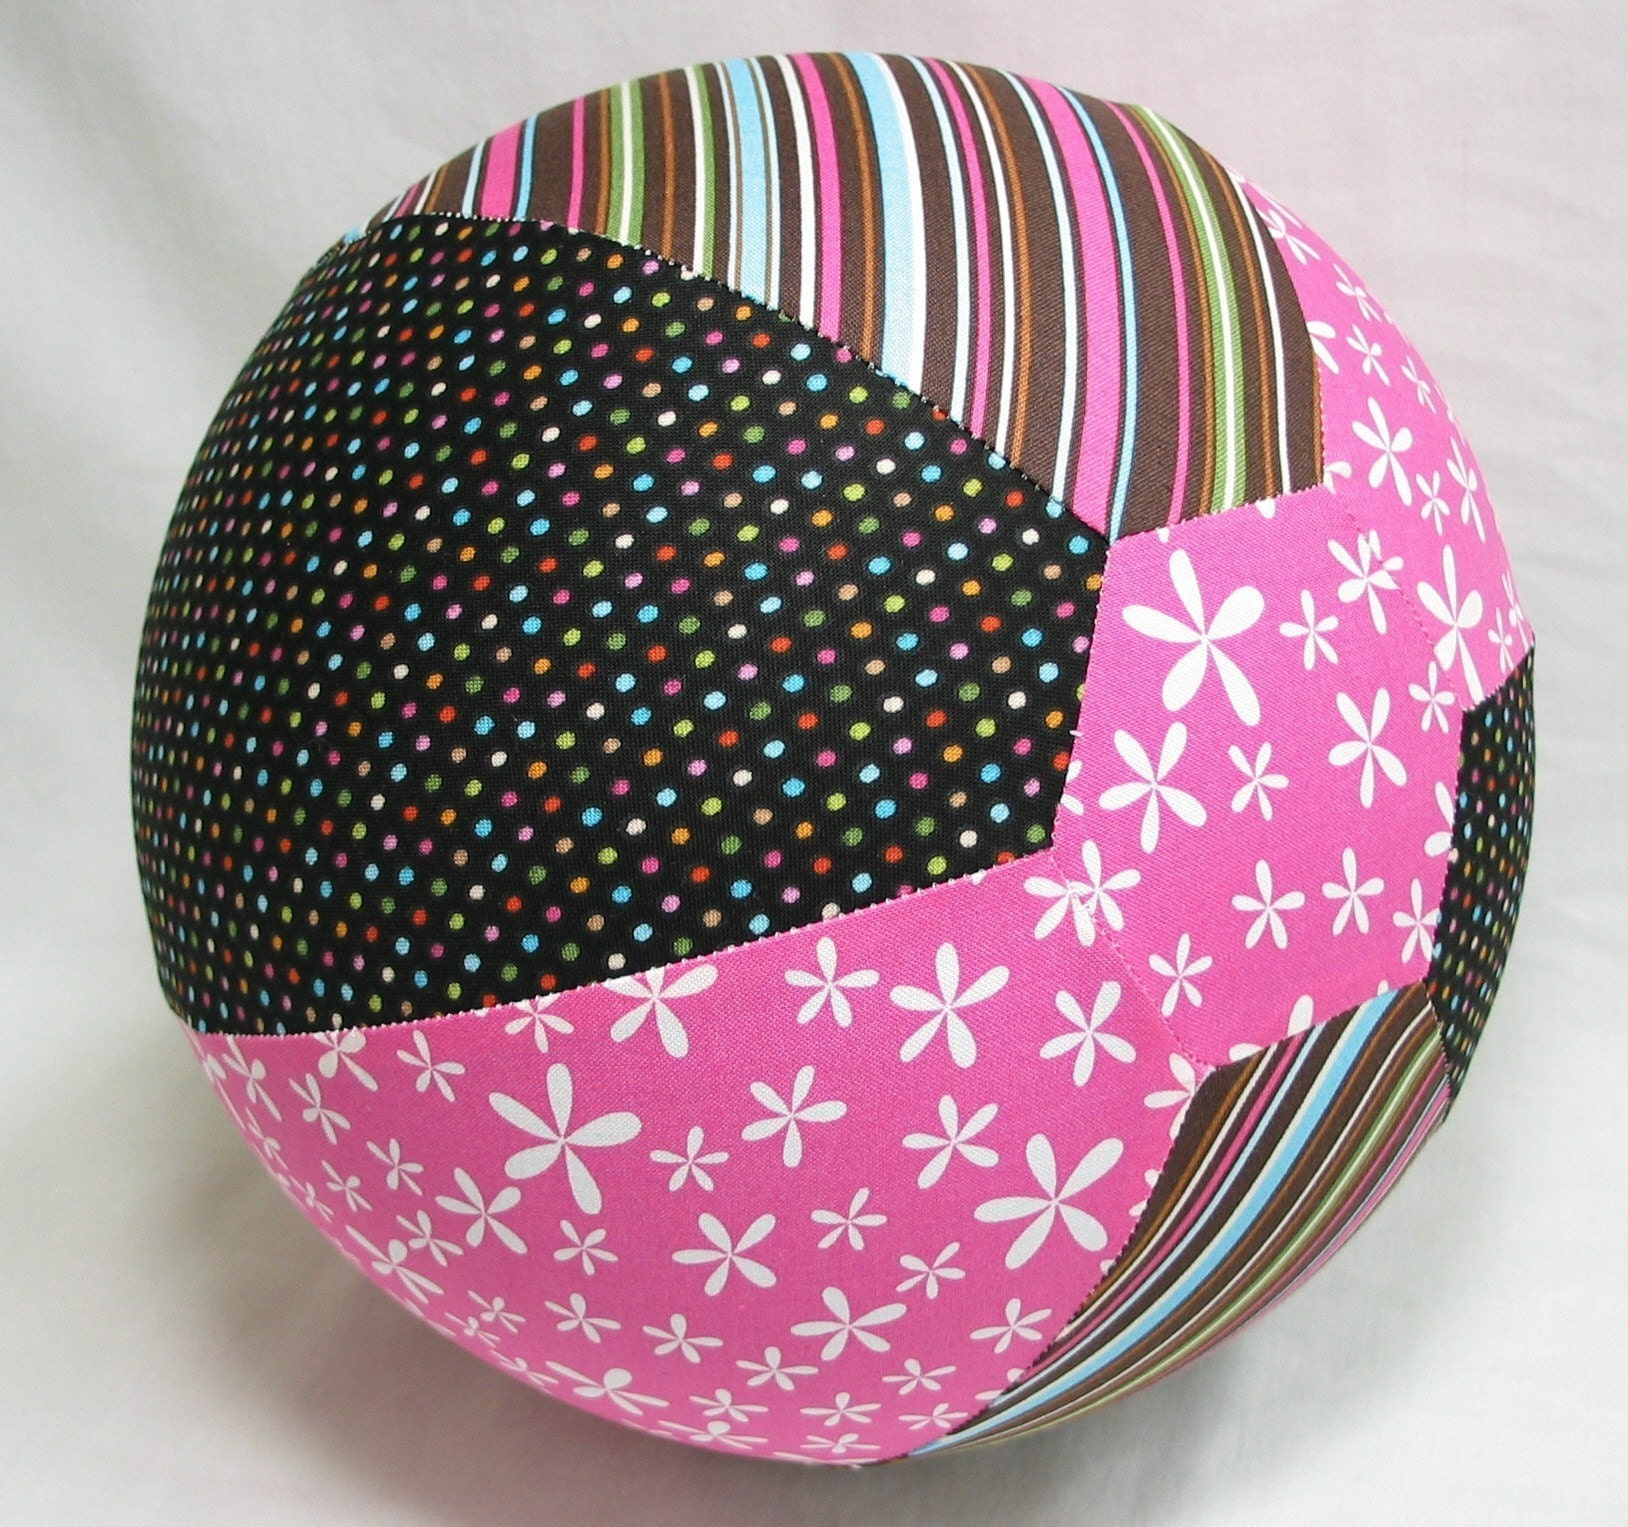 reserved for Christy - Balloon Ball TOY - Girly FUN Fabric - Hot Pink and Chocolate Brown